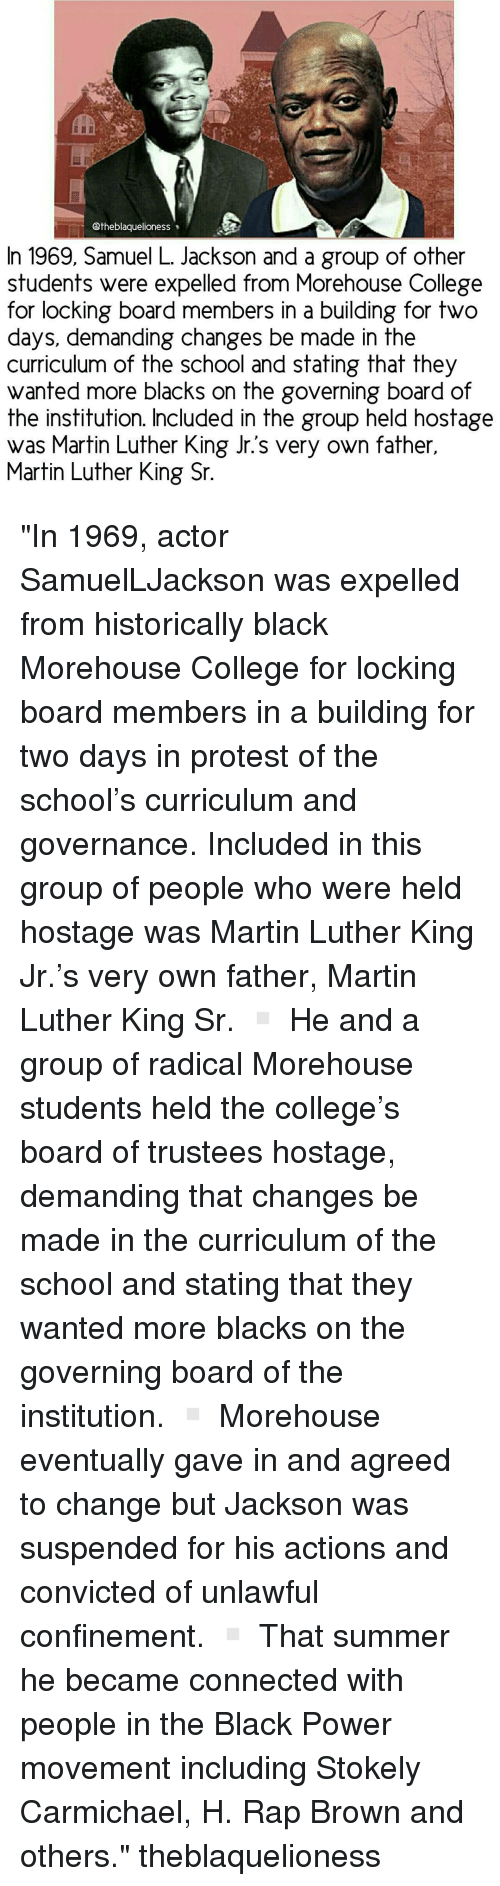 """the institute: Otheblaquelioness  In 1969, Samuel L. Jackson and a group of other  students were expelled from Morehouse College  for locking board members in a building for two  days, demanding changes be made in the  curriculum of the school and stating that they  wanted more blacks on the governing board of  the institution. Included in the group held hostage  was Martin Luther King Jr.s very own father,  Martin Luther King Sr. """"In 1969, actor SamuelLJackson was expelled from historically black Morehouse College for locking board members in a building for two days in protest of the school's curriculum and governance. Included in this group of people who were held hostage was Martin Luther King Jr.'s very own father, Martin Luther King Sr. ▫ He and a group of radical Morehouse students held the college's board of trustees hostage, demanding that changes be made in the curriculum of the school and stating that they wanted more blacks on the governing board of the institution. ▫ Morehouse eventually gave in and agreed to change but Jackson was suspended for his actions and convicted of unlawful confinement. ▫ That summer he became connected with people in the Black Power movement including Stokely Carmichael, H. Rap Brown and others."""" theblaquelioness"""